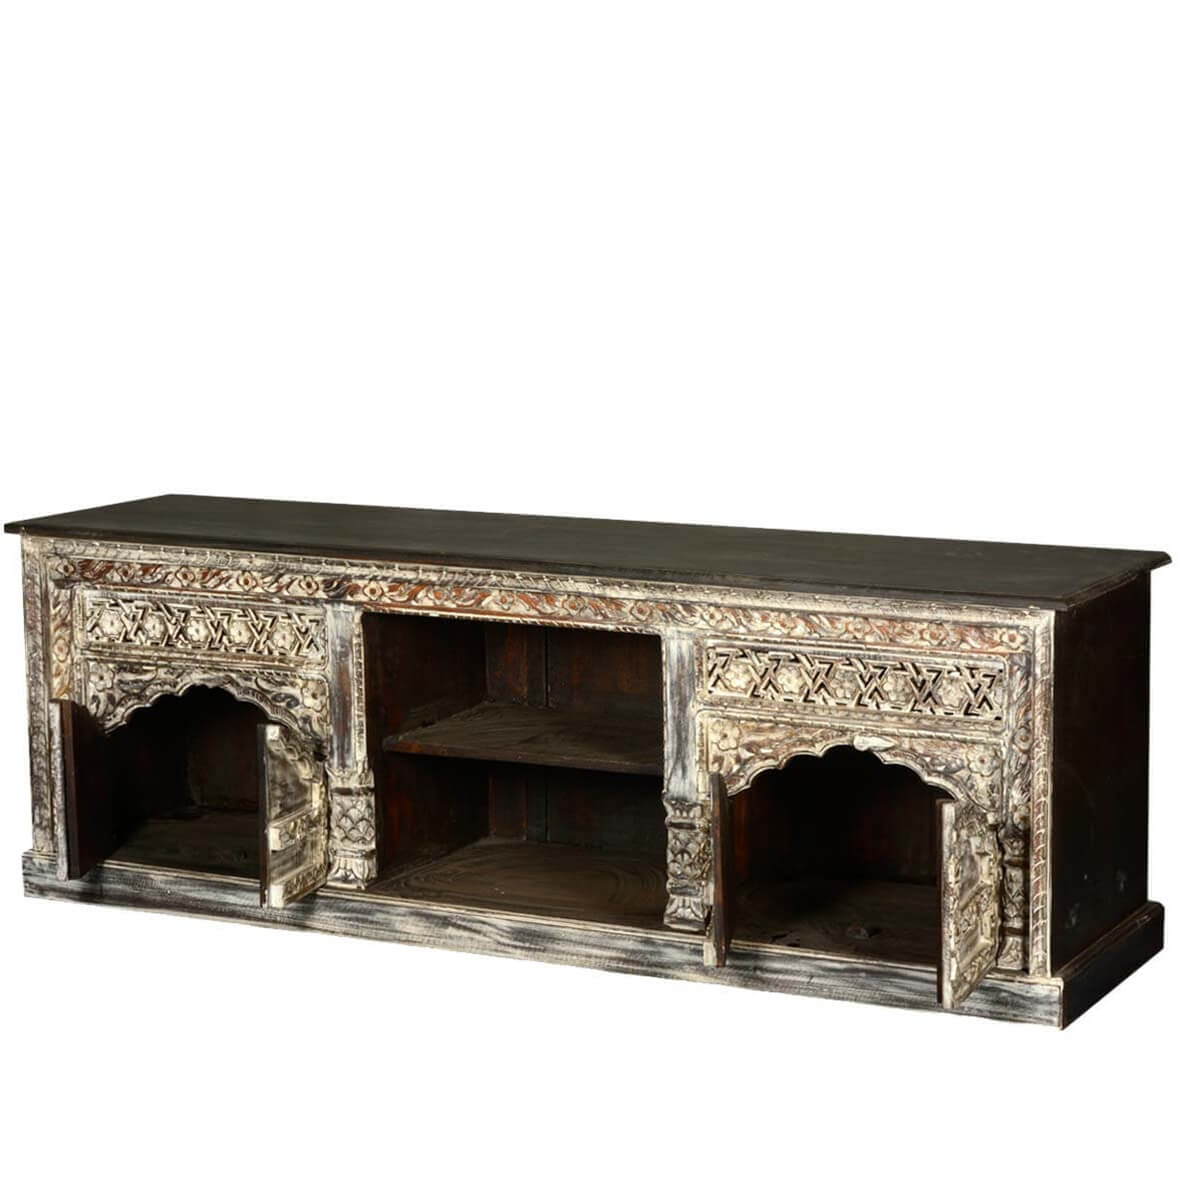 Reclaimed Wood Midnight Snow Castle TV Stand Media Console